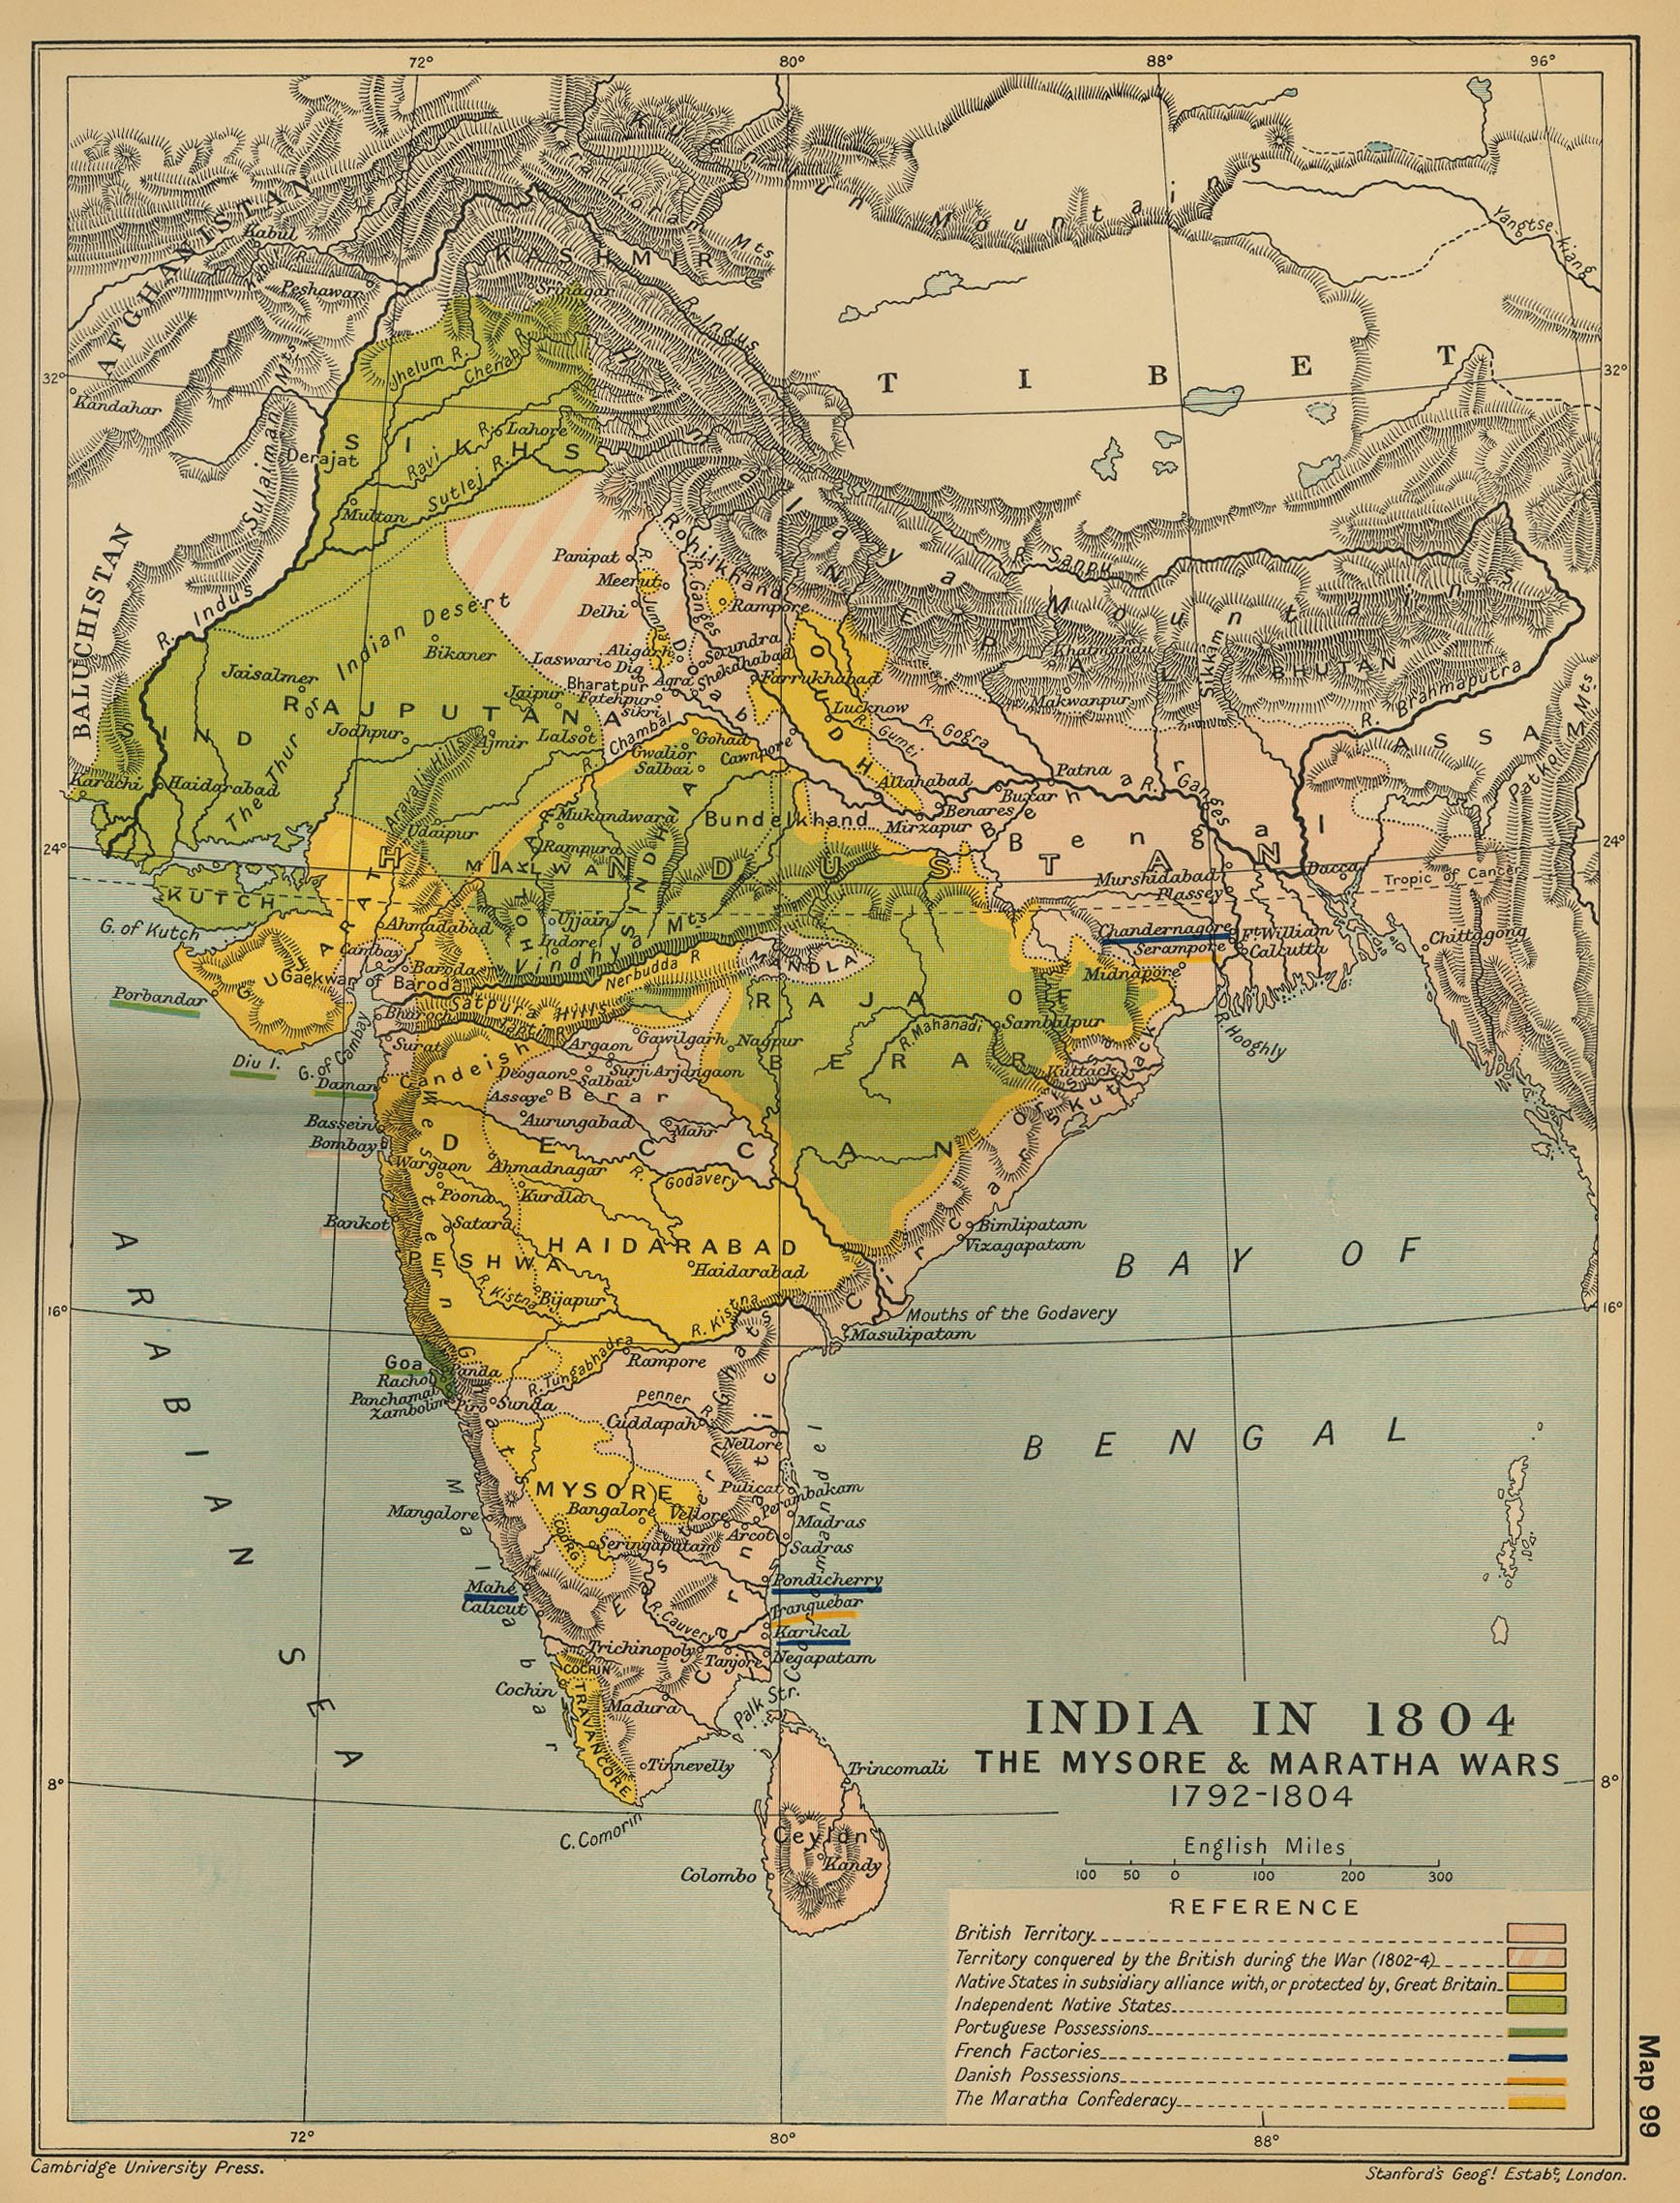 Map of India in 1804: The Mysore & Maratha Wars 1792-1804